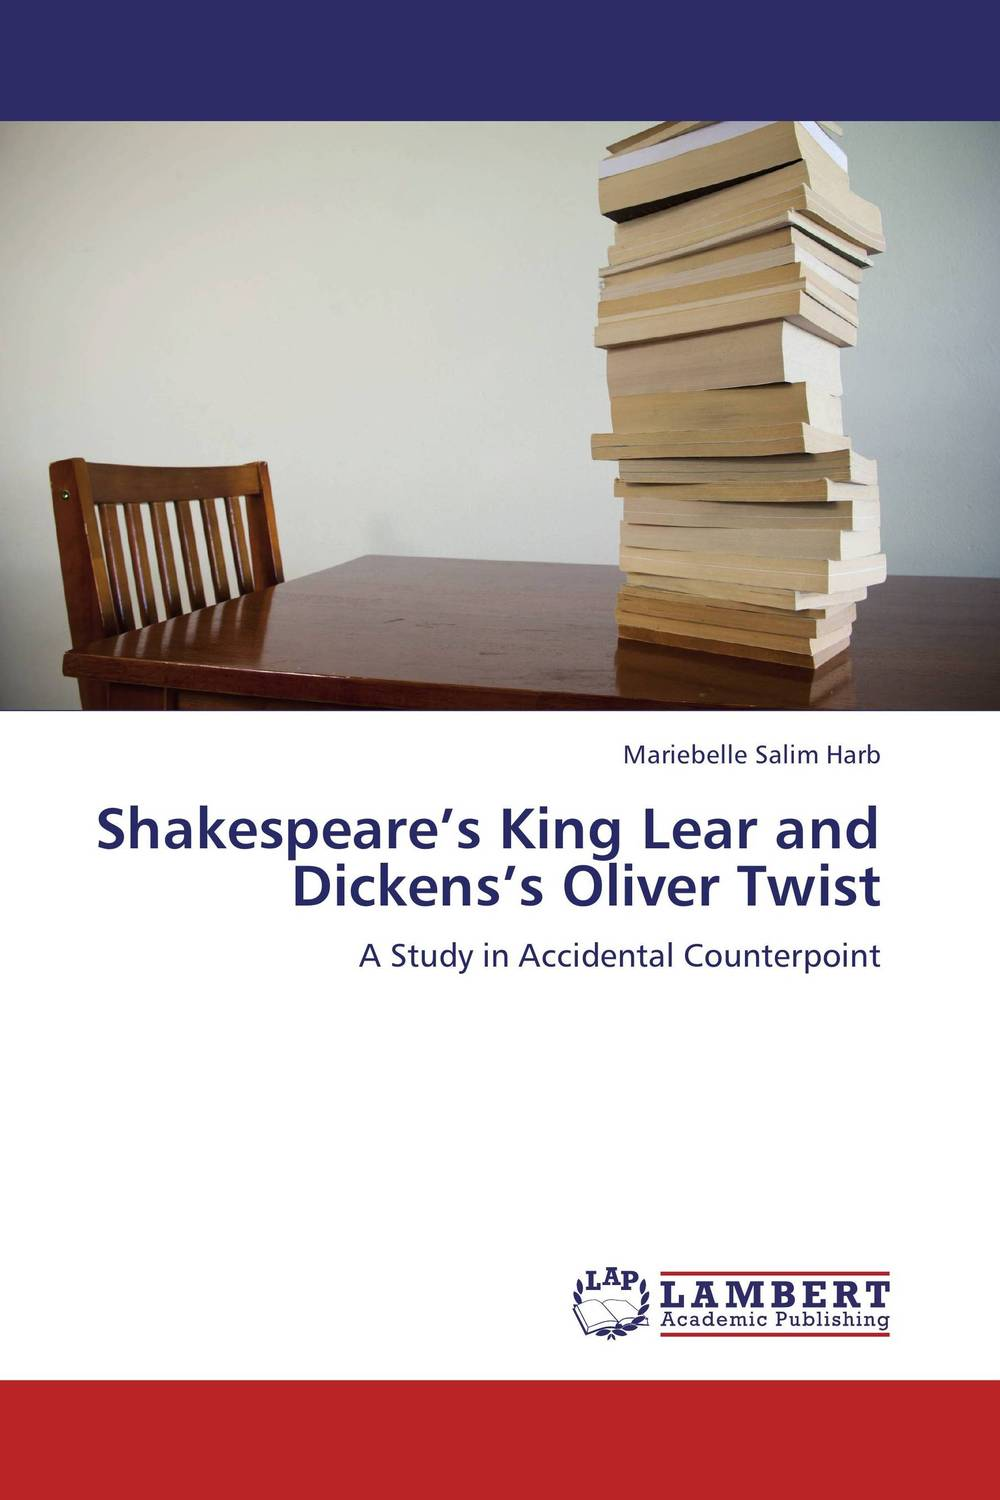 Shakespeare's King Lear and Dickens's Oliver Twist